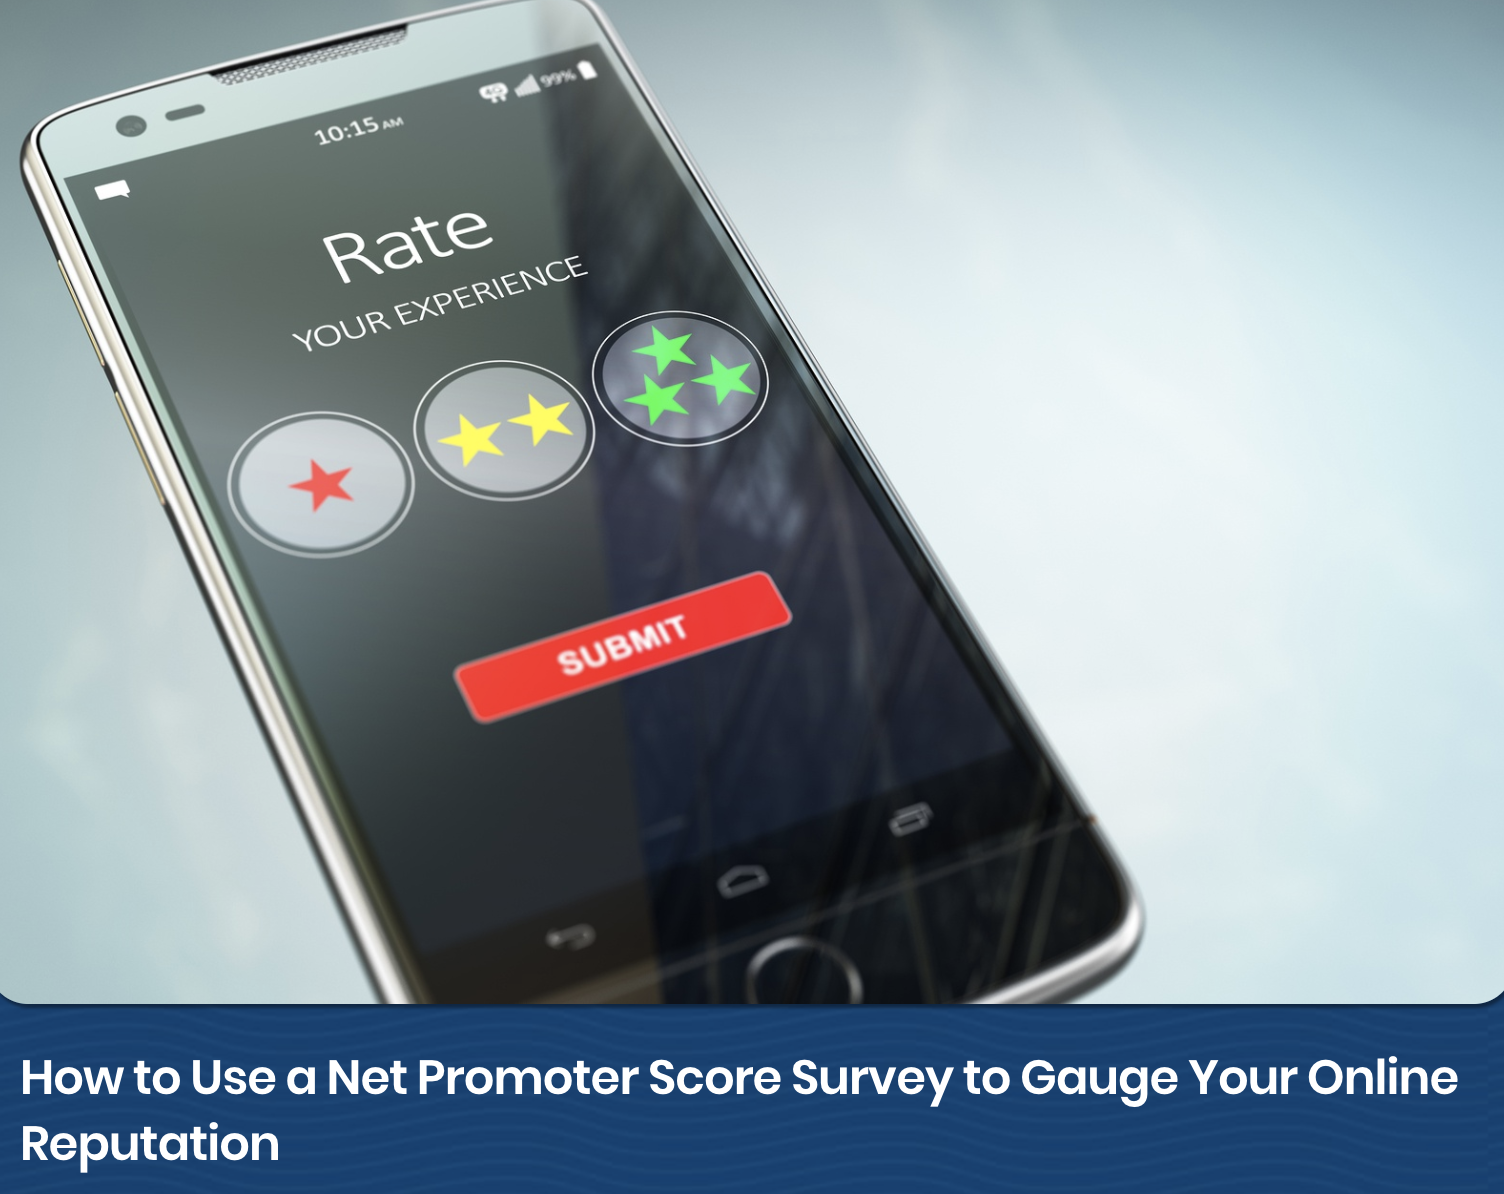 Net_Promoter_Score_Survey_Example